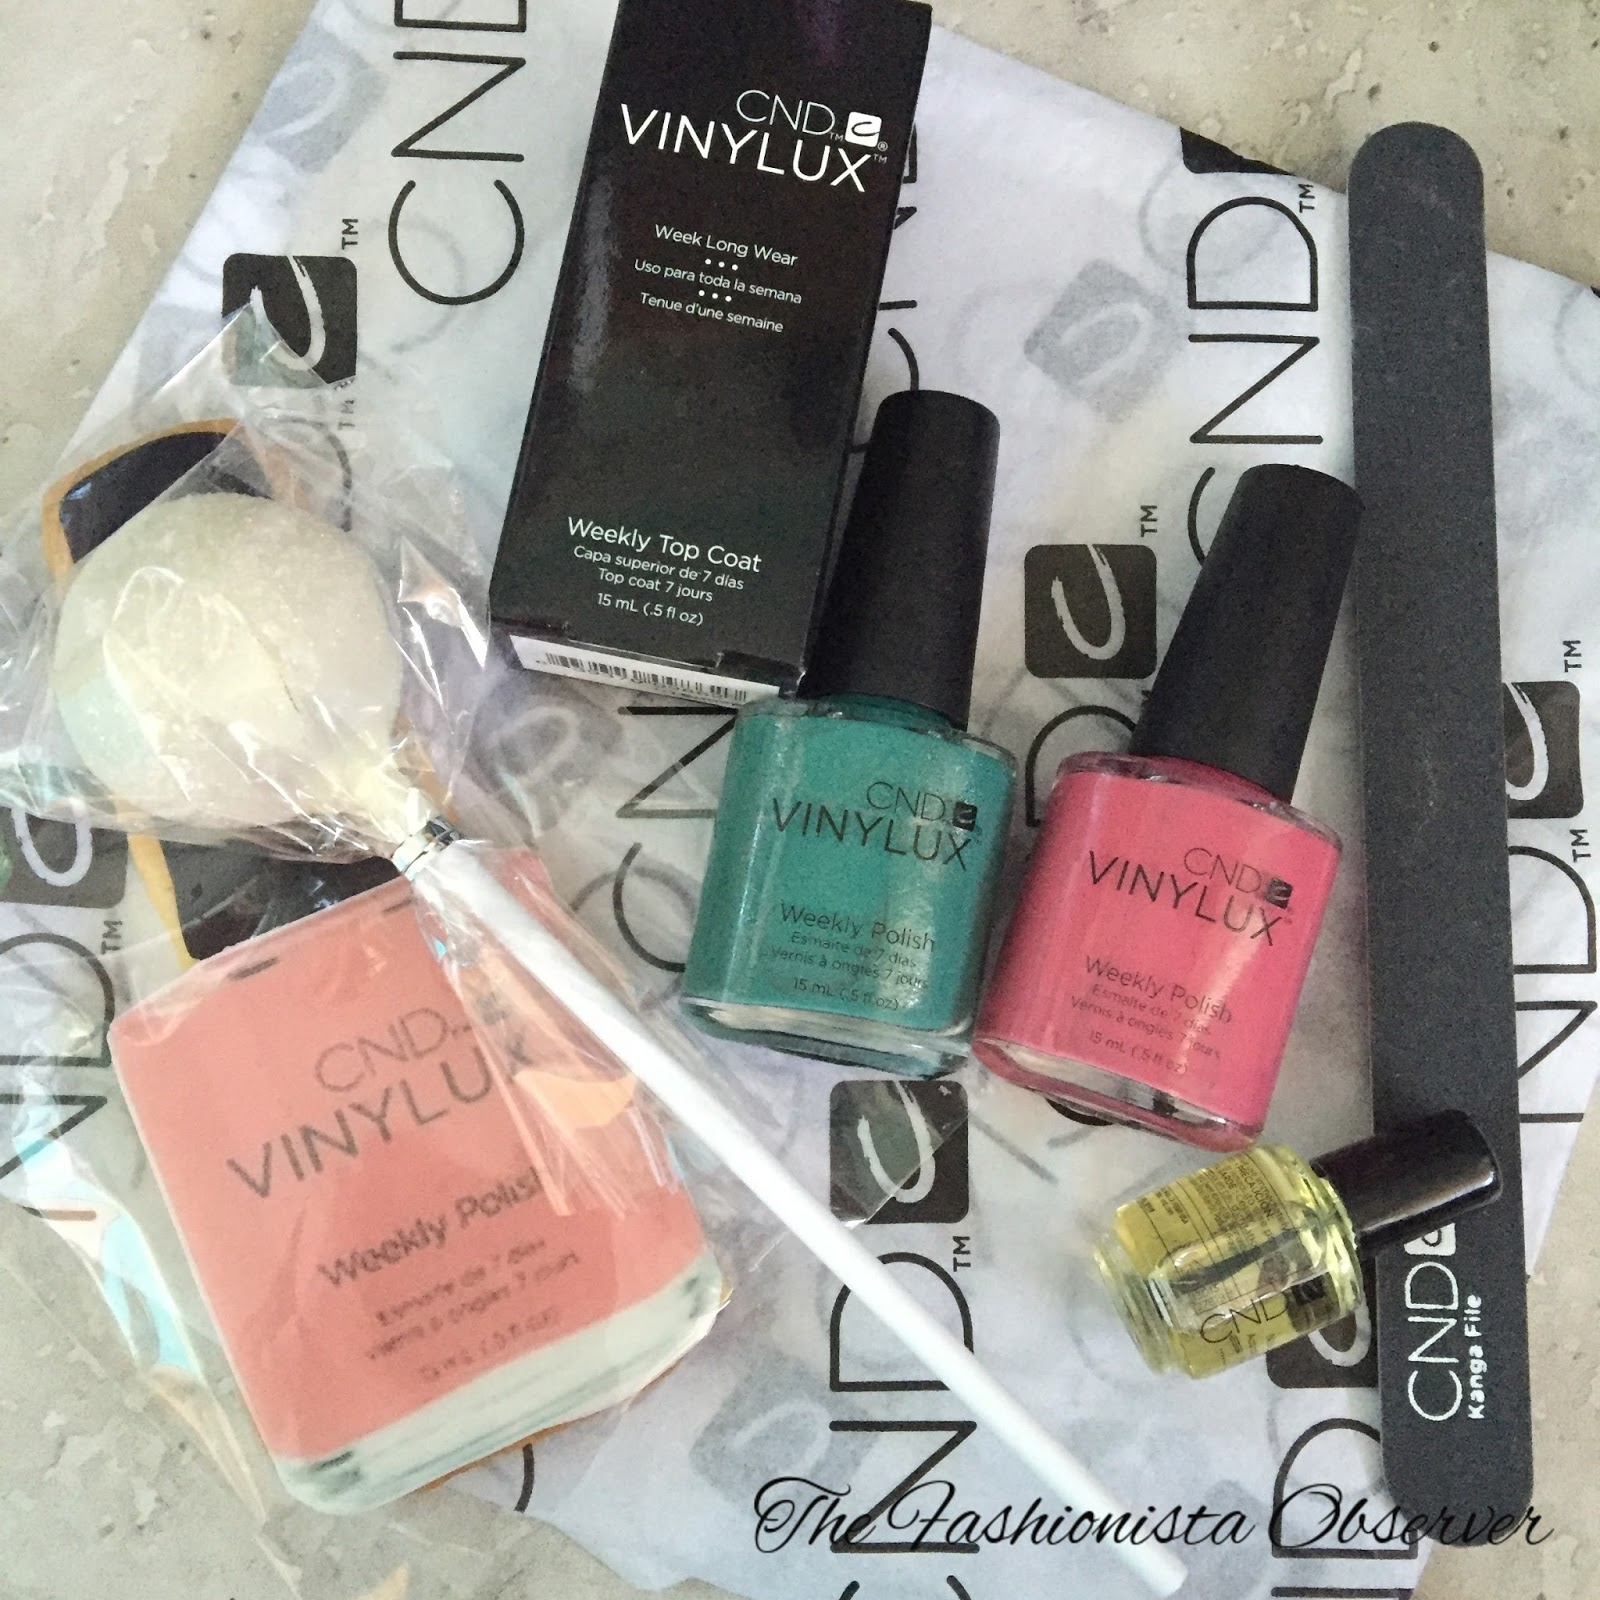 CND Vinylux - Is It A Yay or A Nay for These Weekly Nail Polish ...